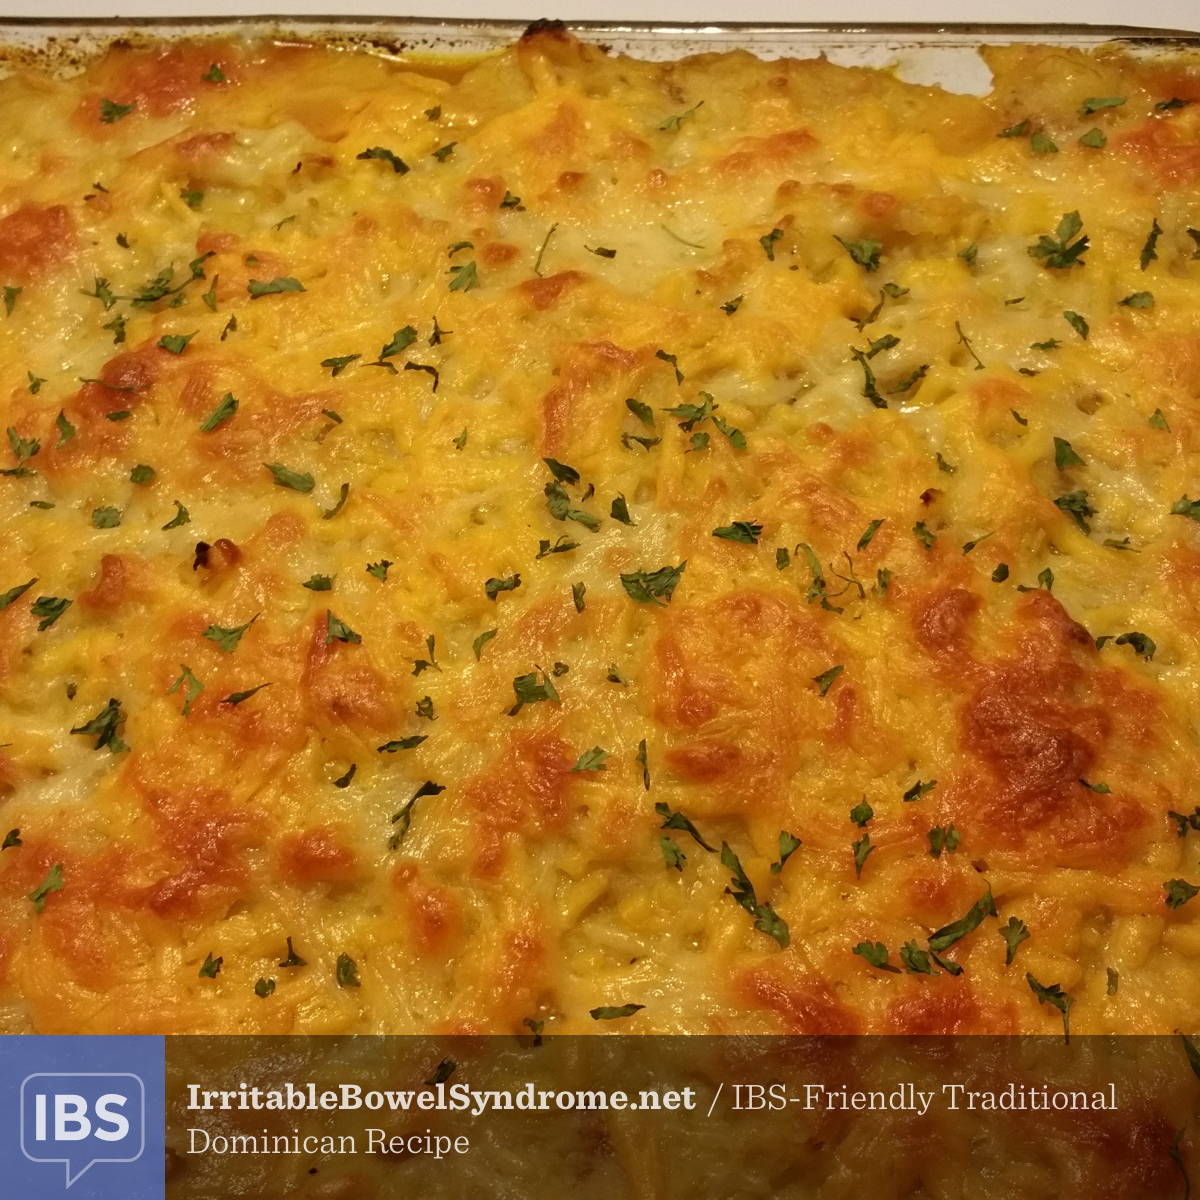 IBS-Friendly Traditional Dominican Recipe